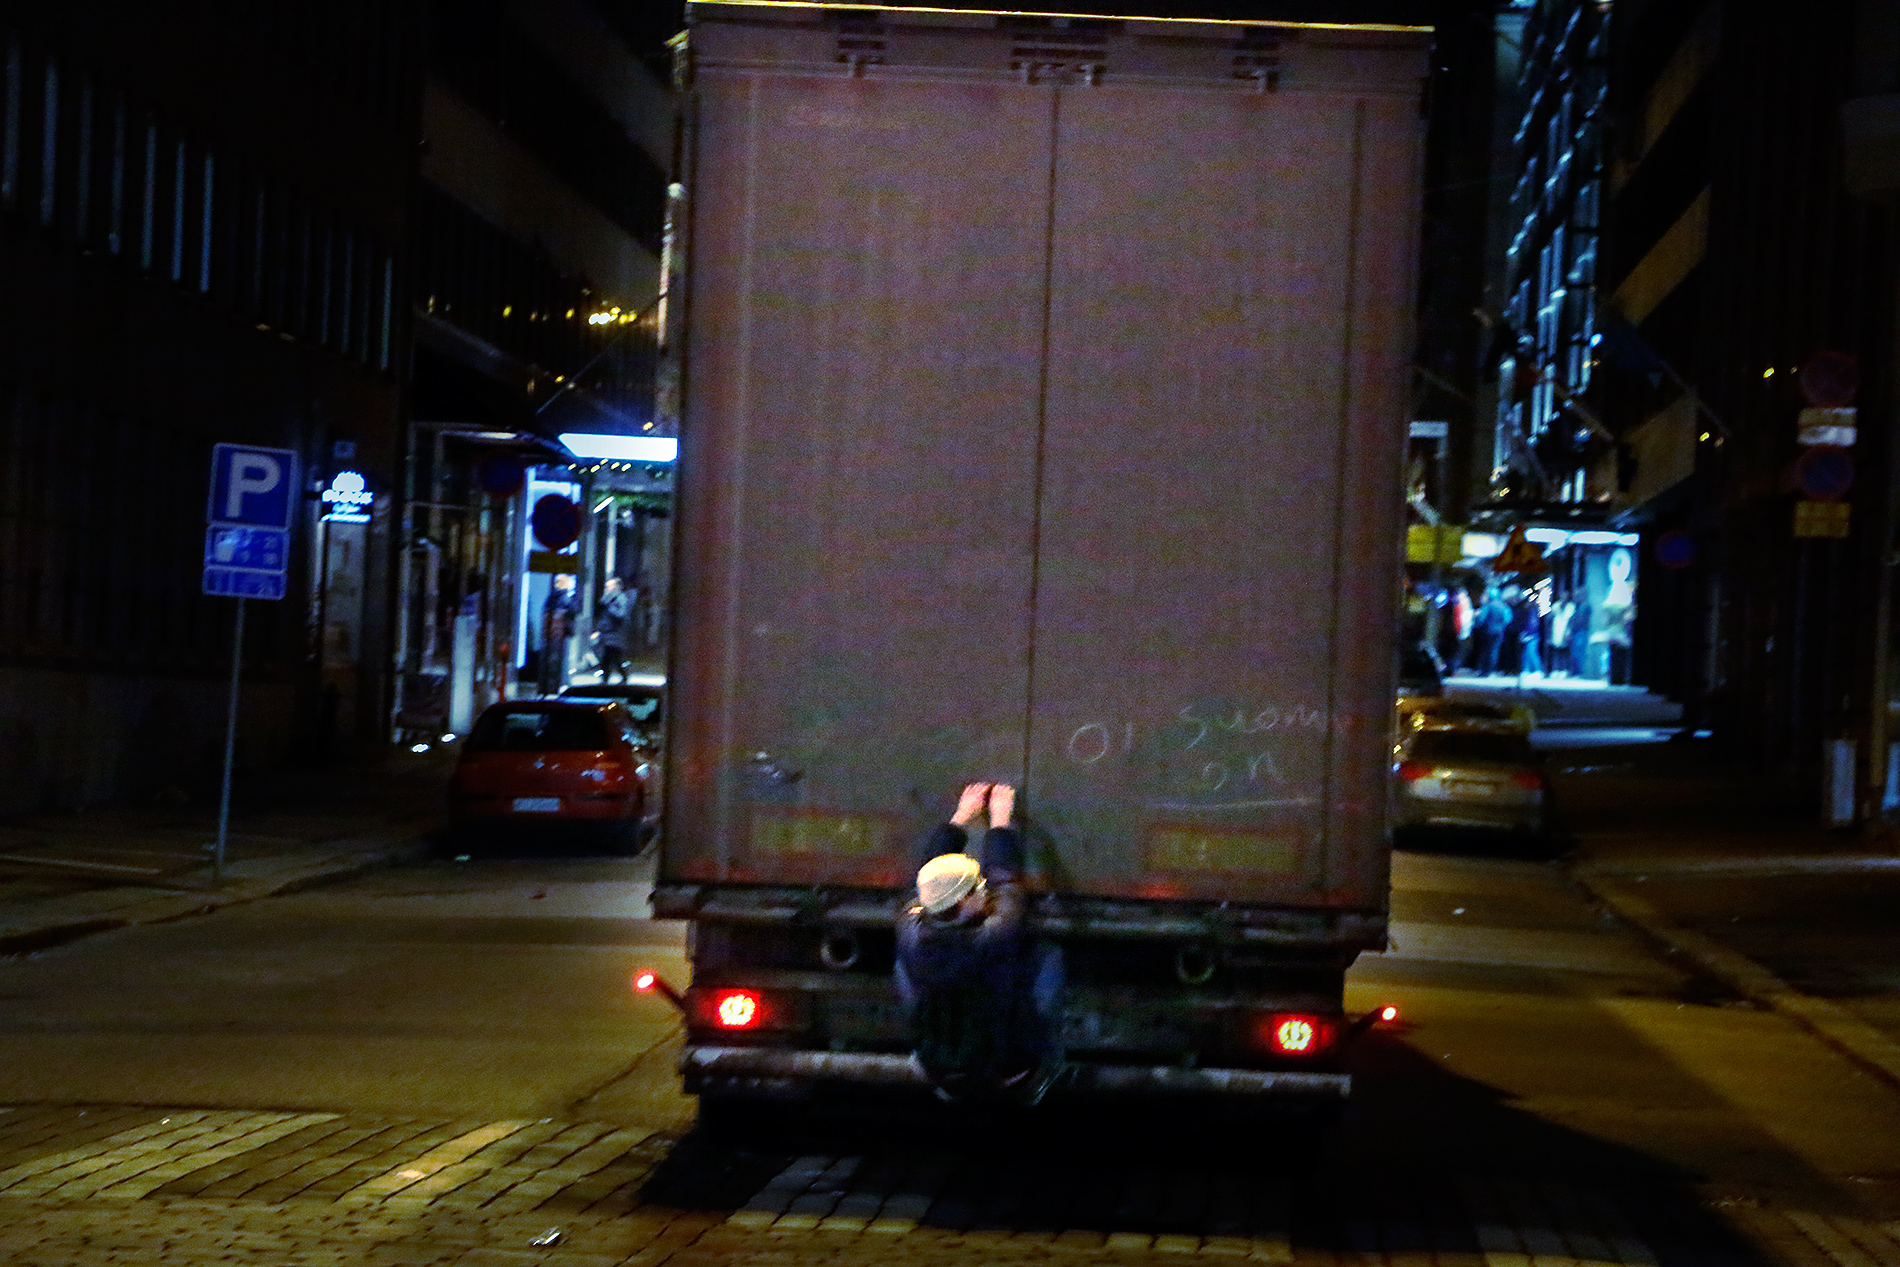 After failing to stop the truck from passing by, this fan jumped on the rear bumper and was able to hold on while the truck started speeding. After about one hundred meters the man fell down in the street. Picture: Tony Öhberg for Finland Today